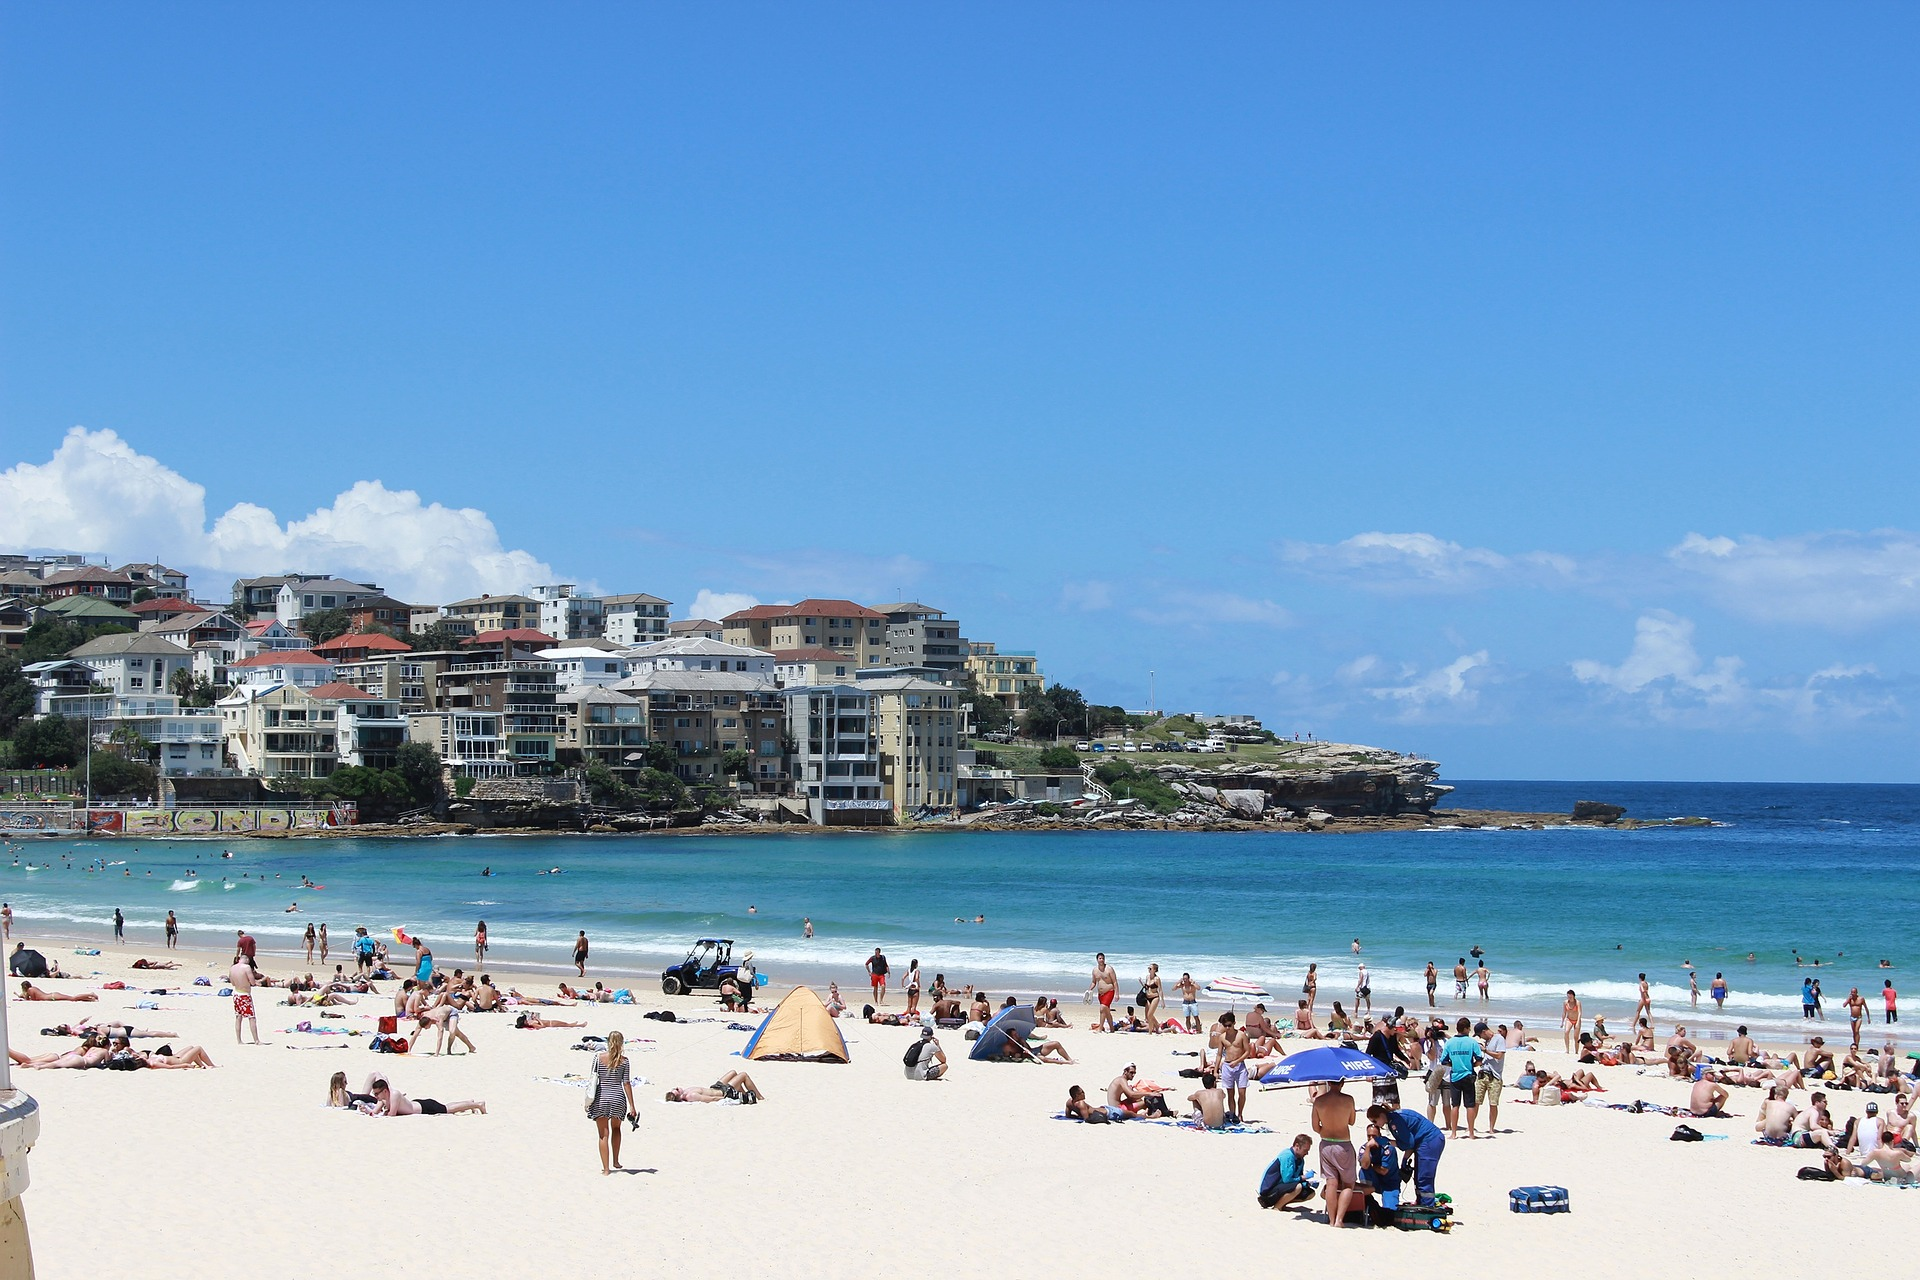 bondi beach honeymoon destination